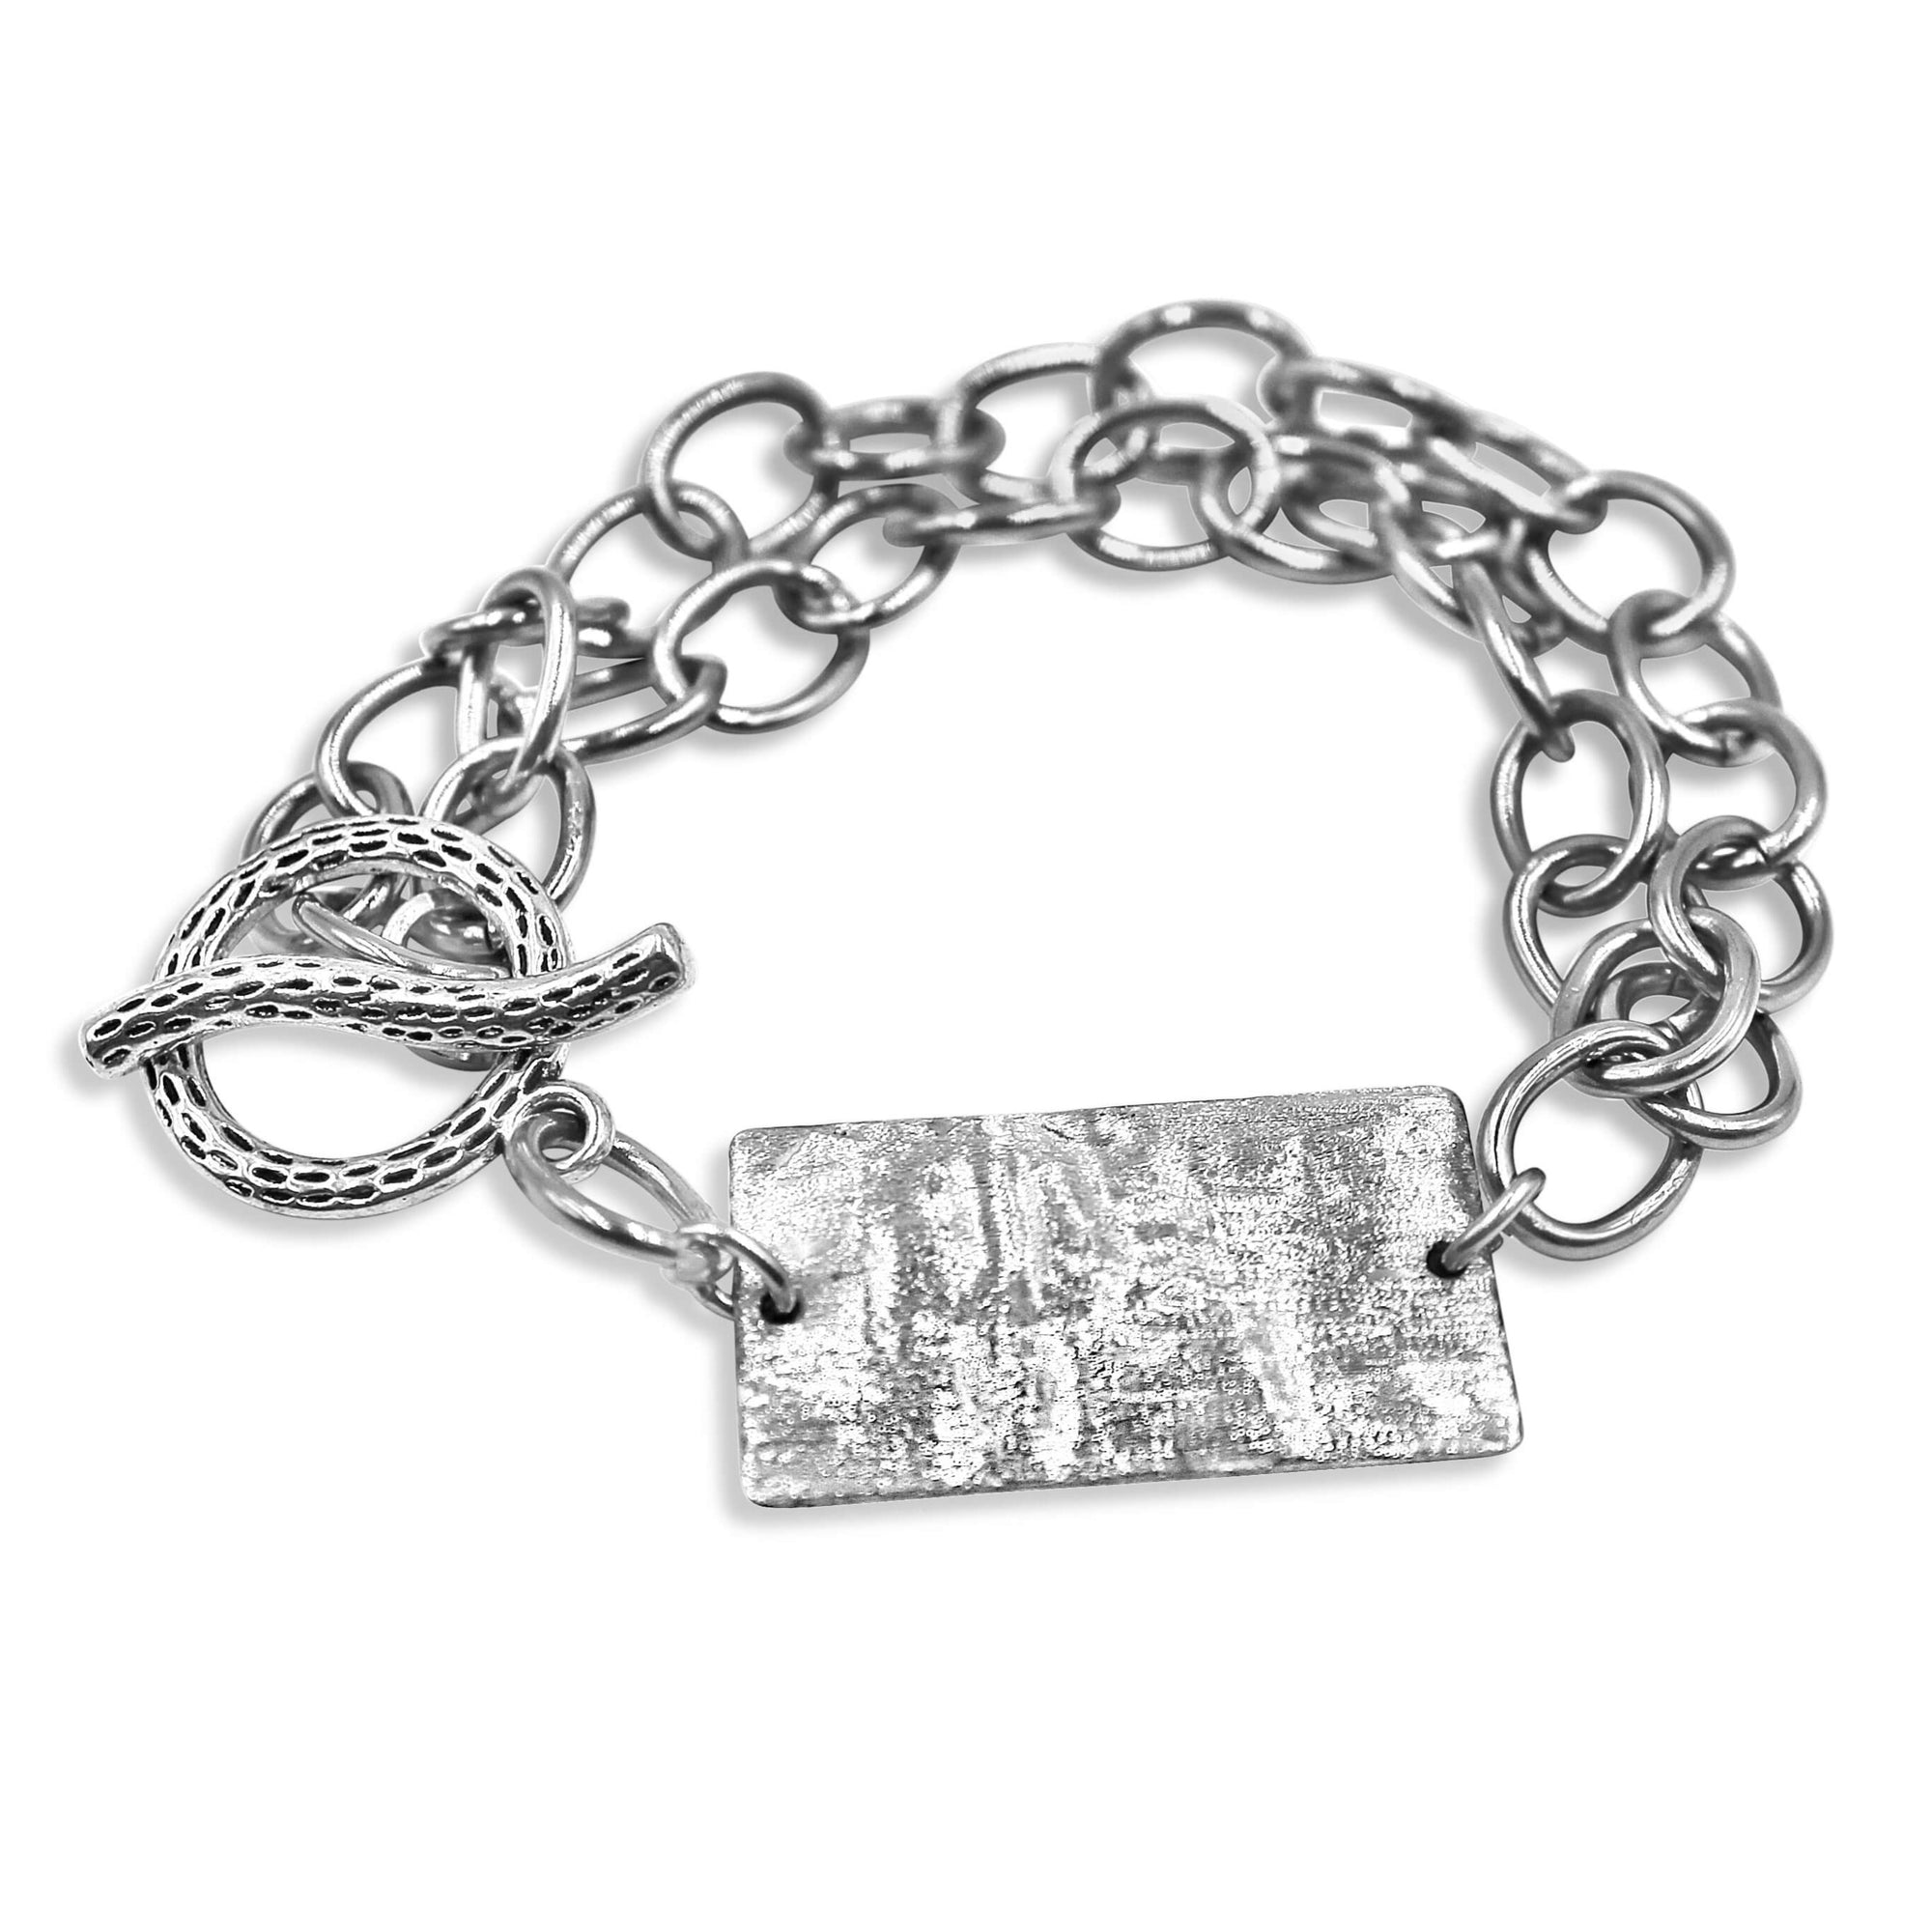 Stainless Steel Rectangle Silver Bracelet - Creative Jewelry by Marcia - Asymmetrical Jewelry - Timeless Jewelry